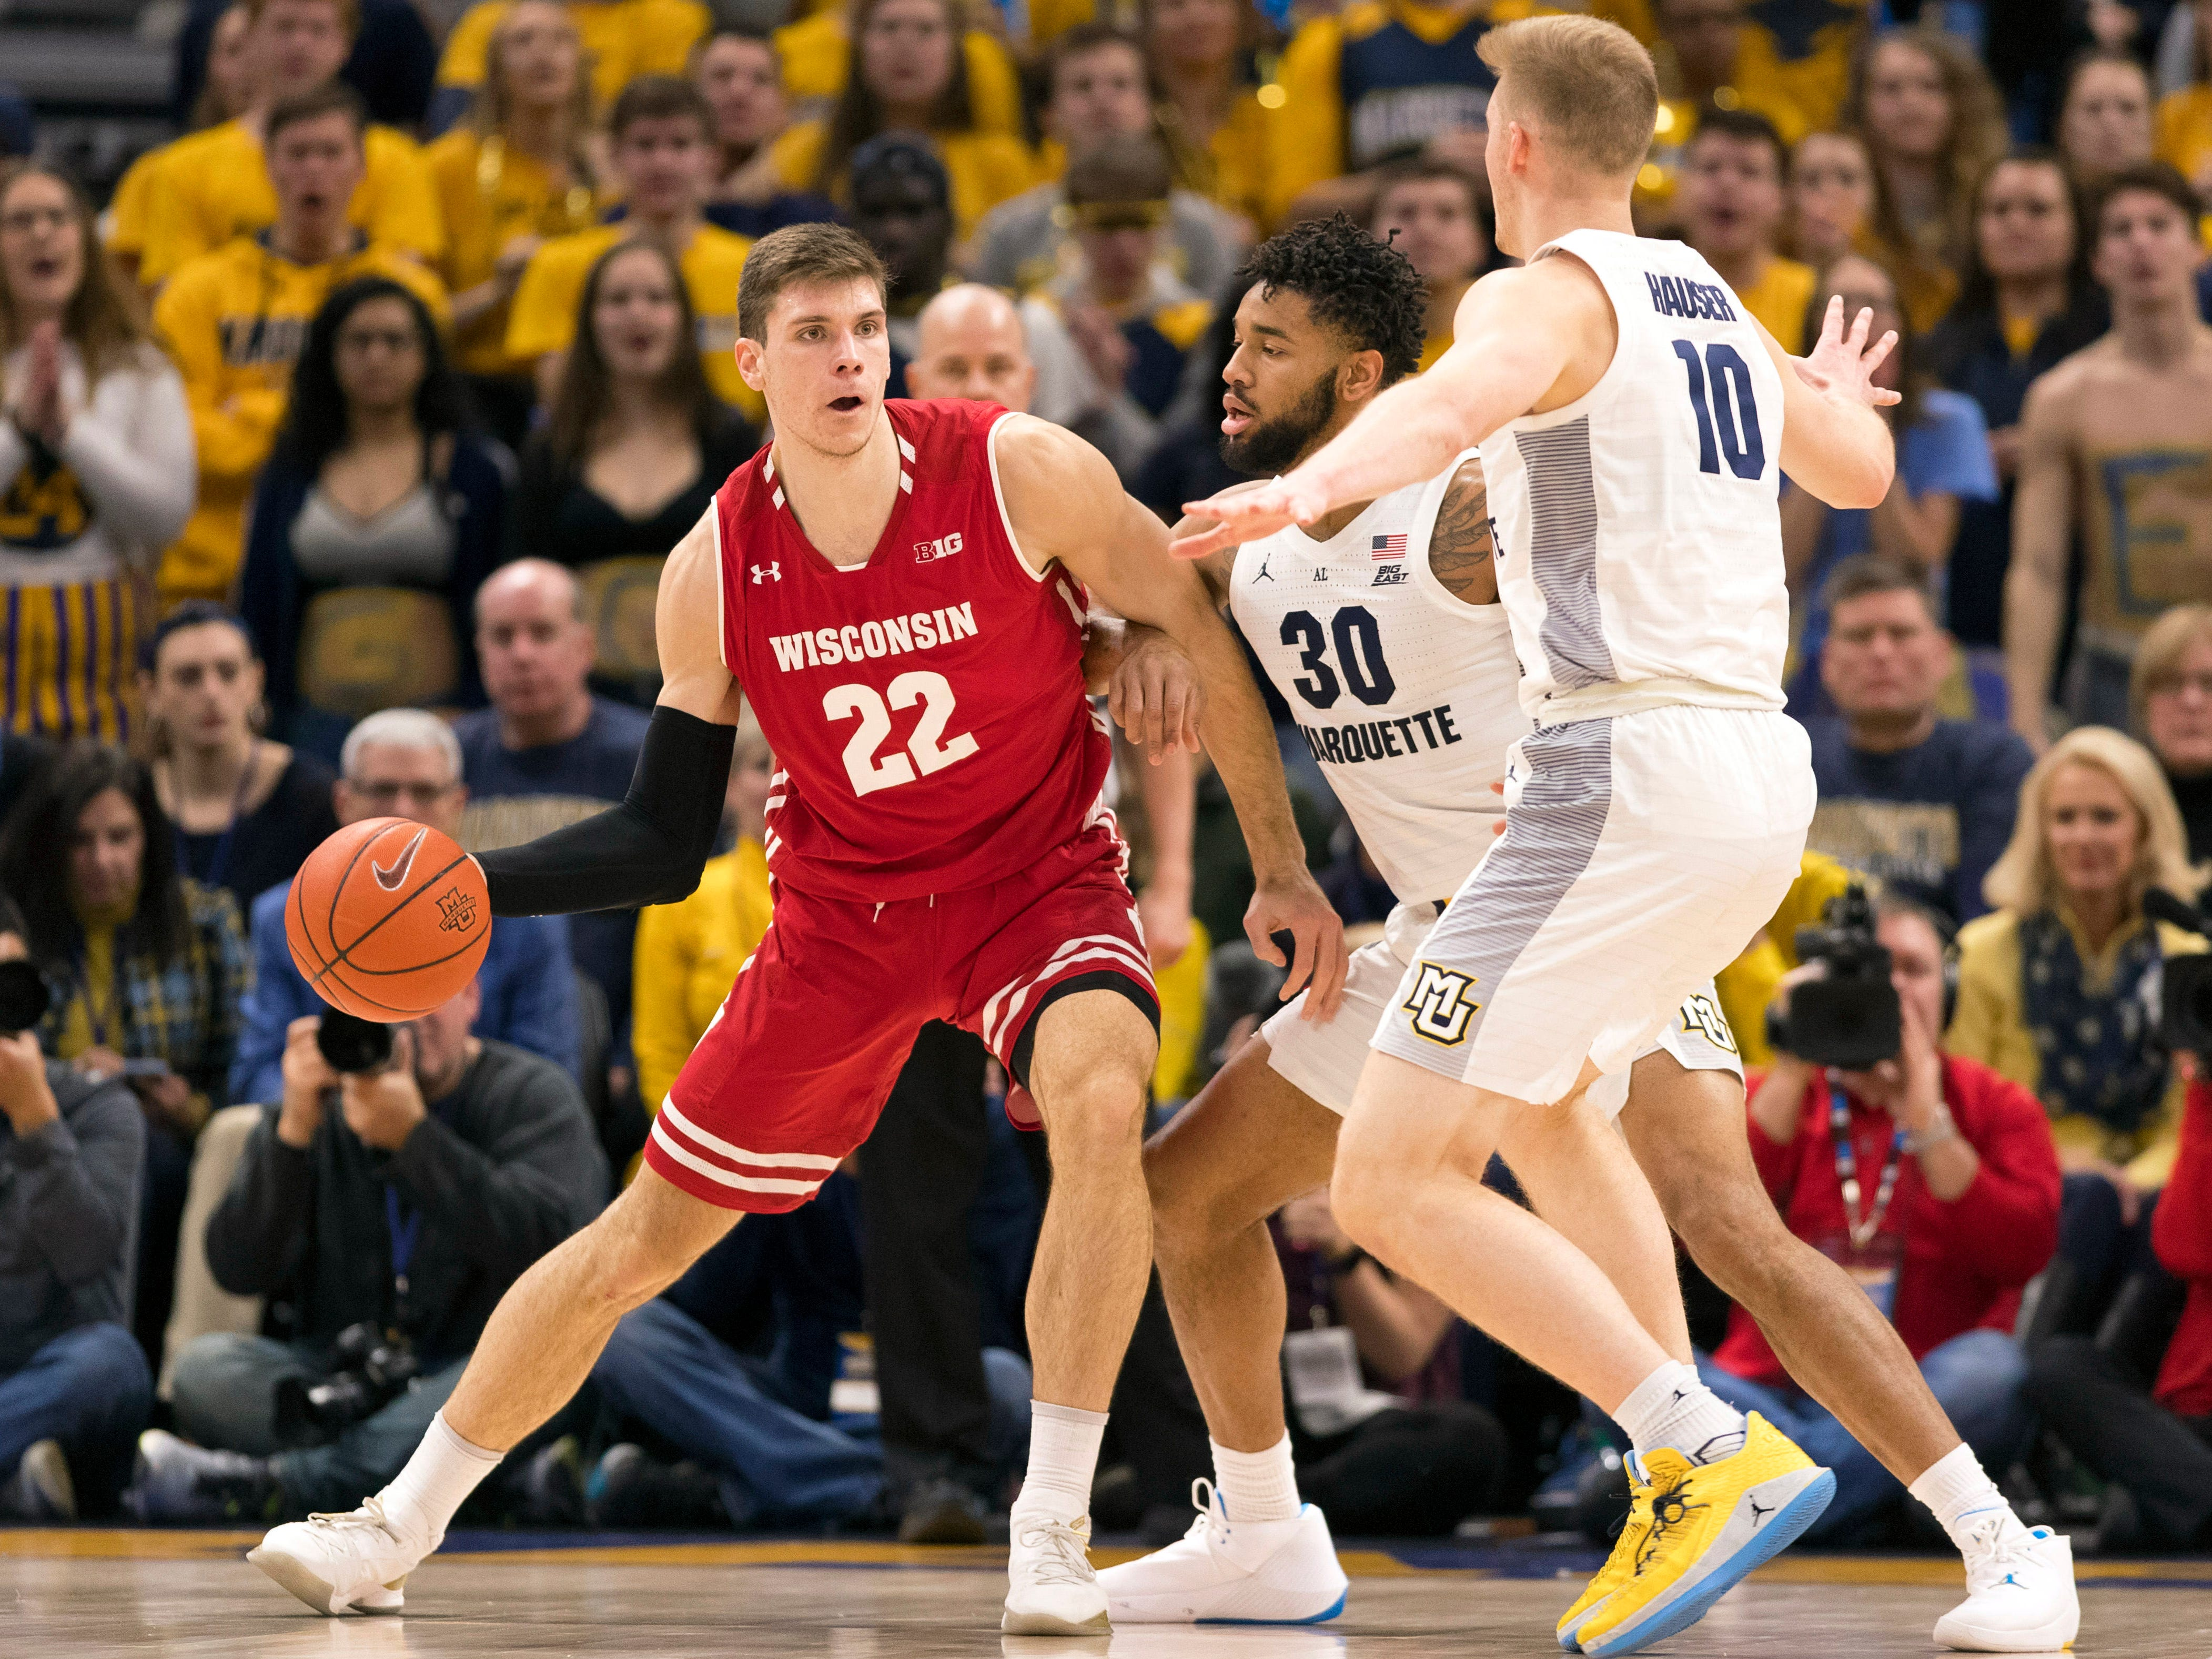 Wisconsin forward Ethan Happ looks to pass under pressure from Marquette forwards Ed Morrow (30) and Sam Hauser.